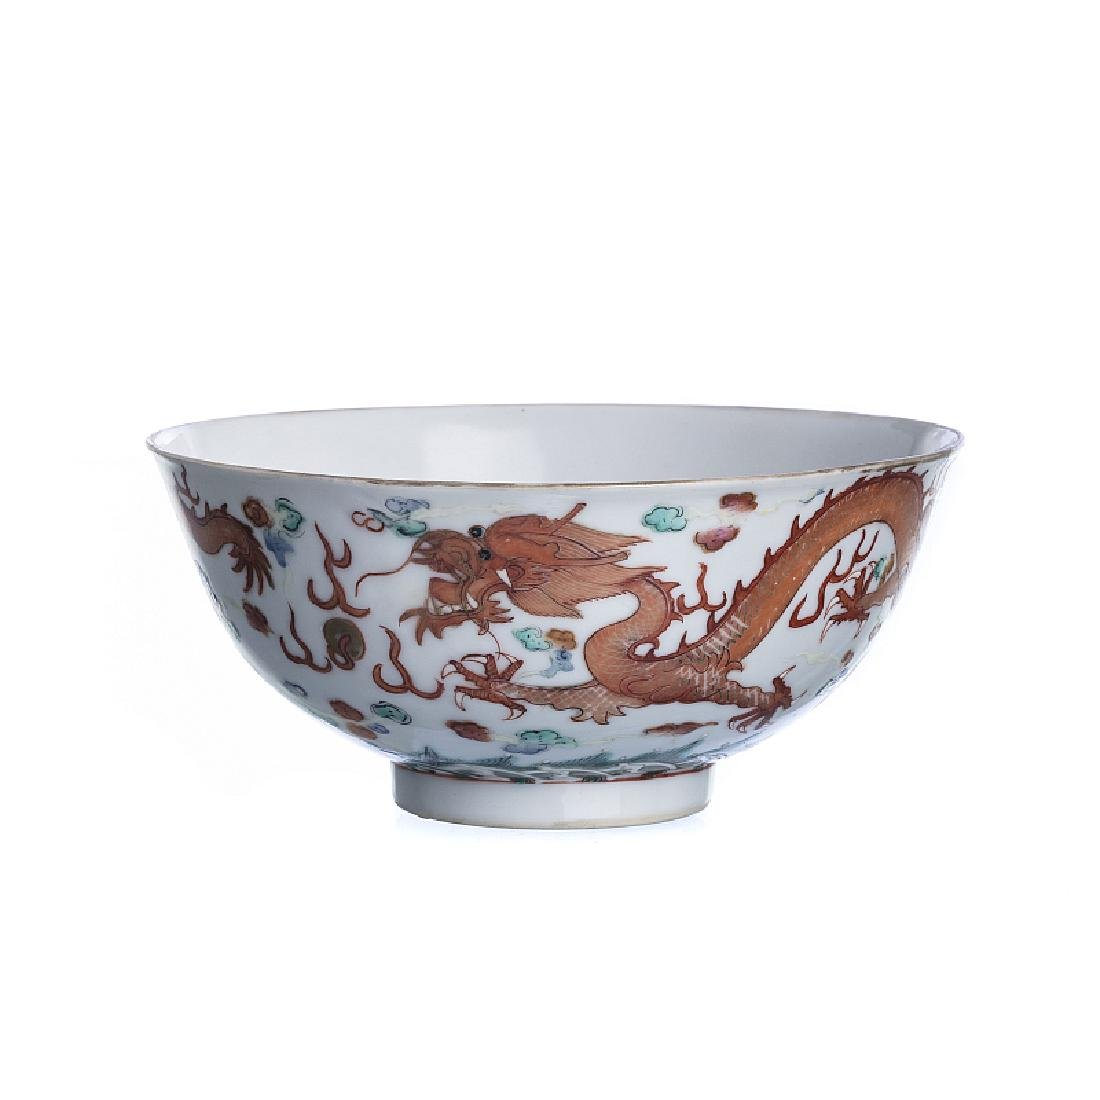 'Dragon' bowl in Chinese porcelain